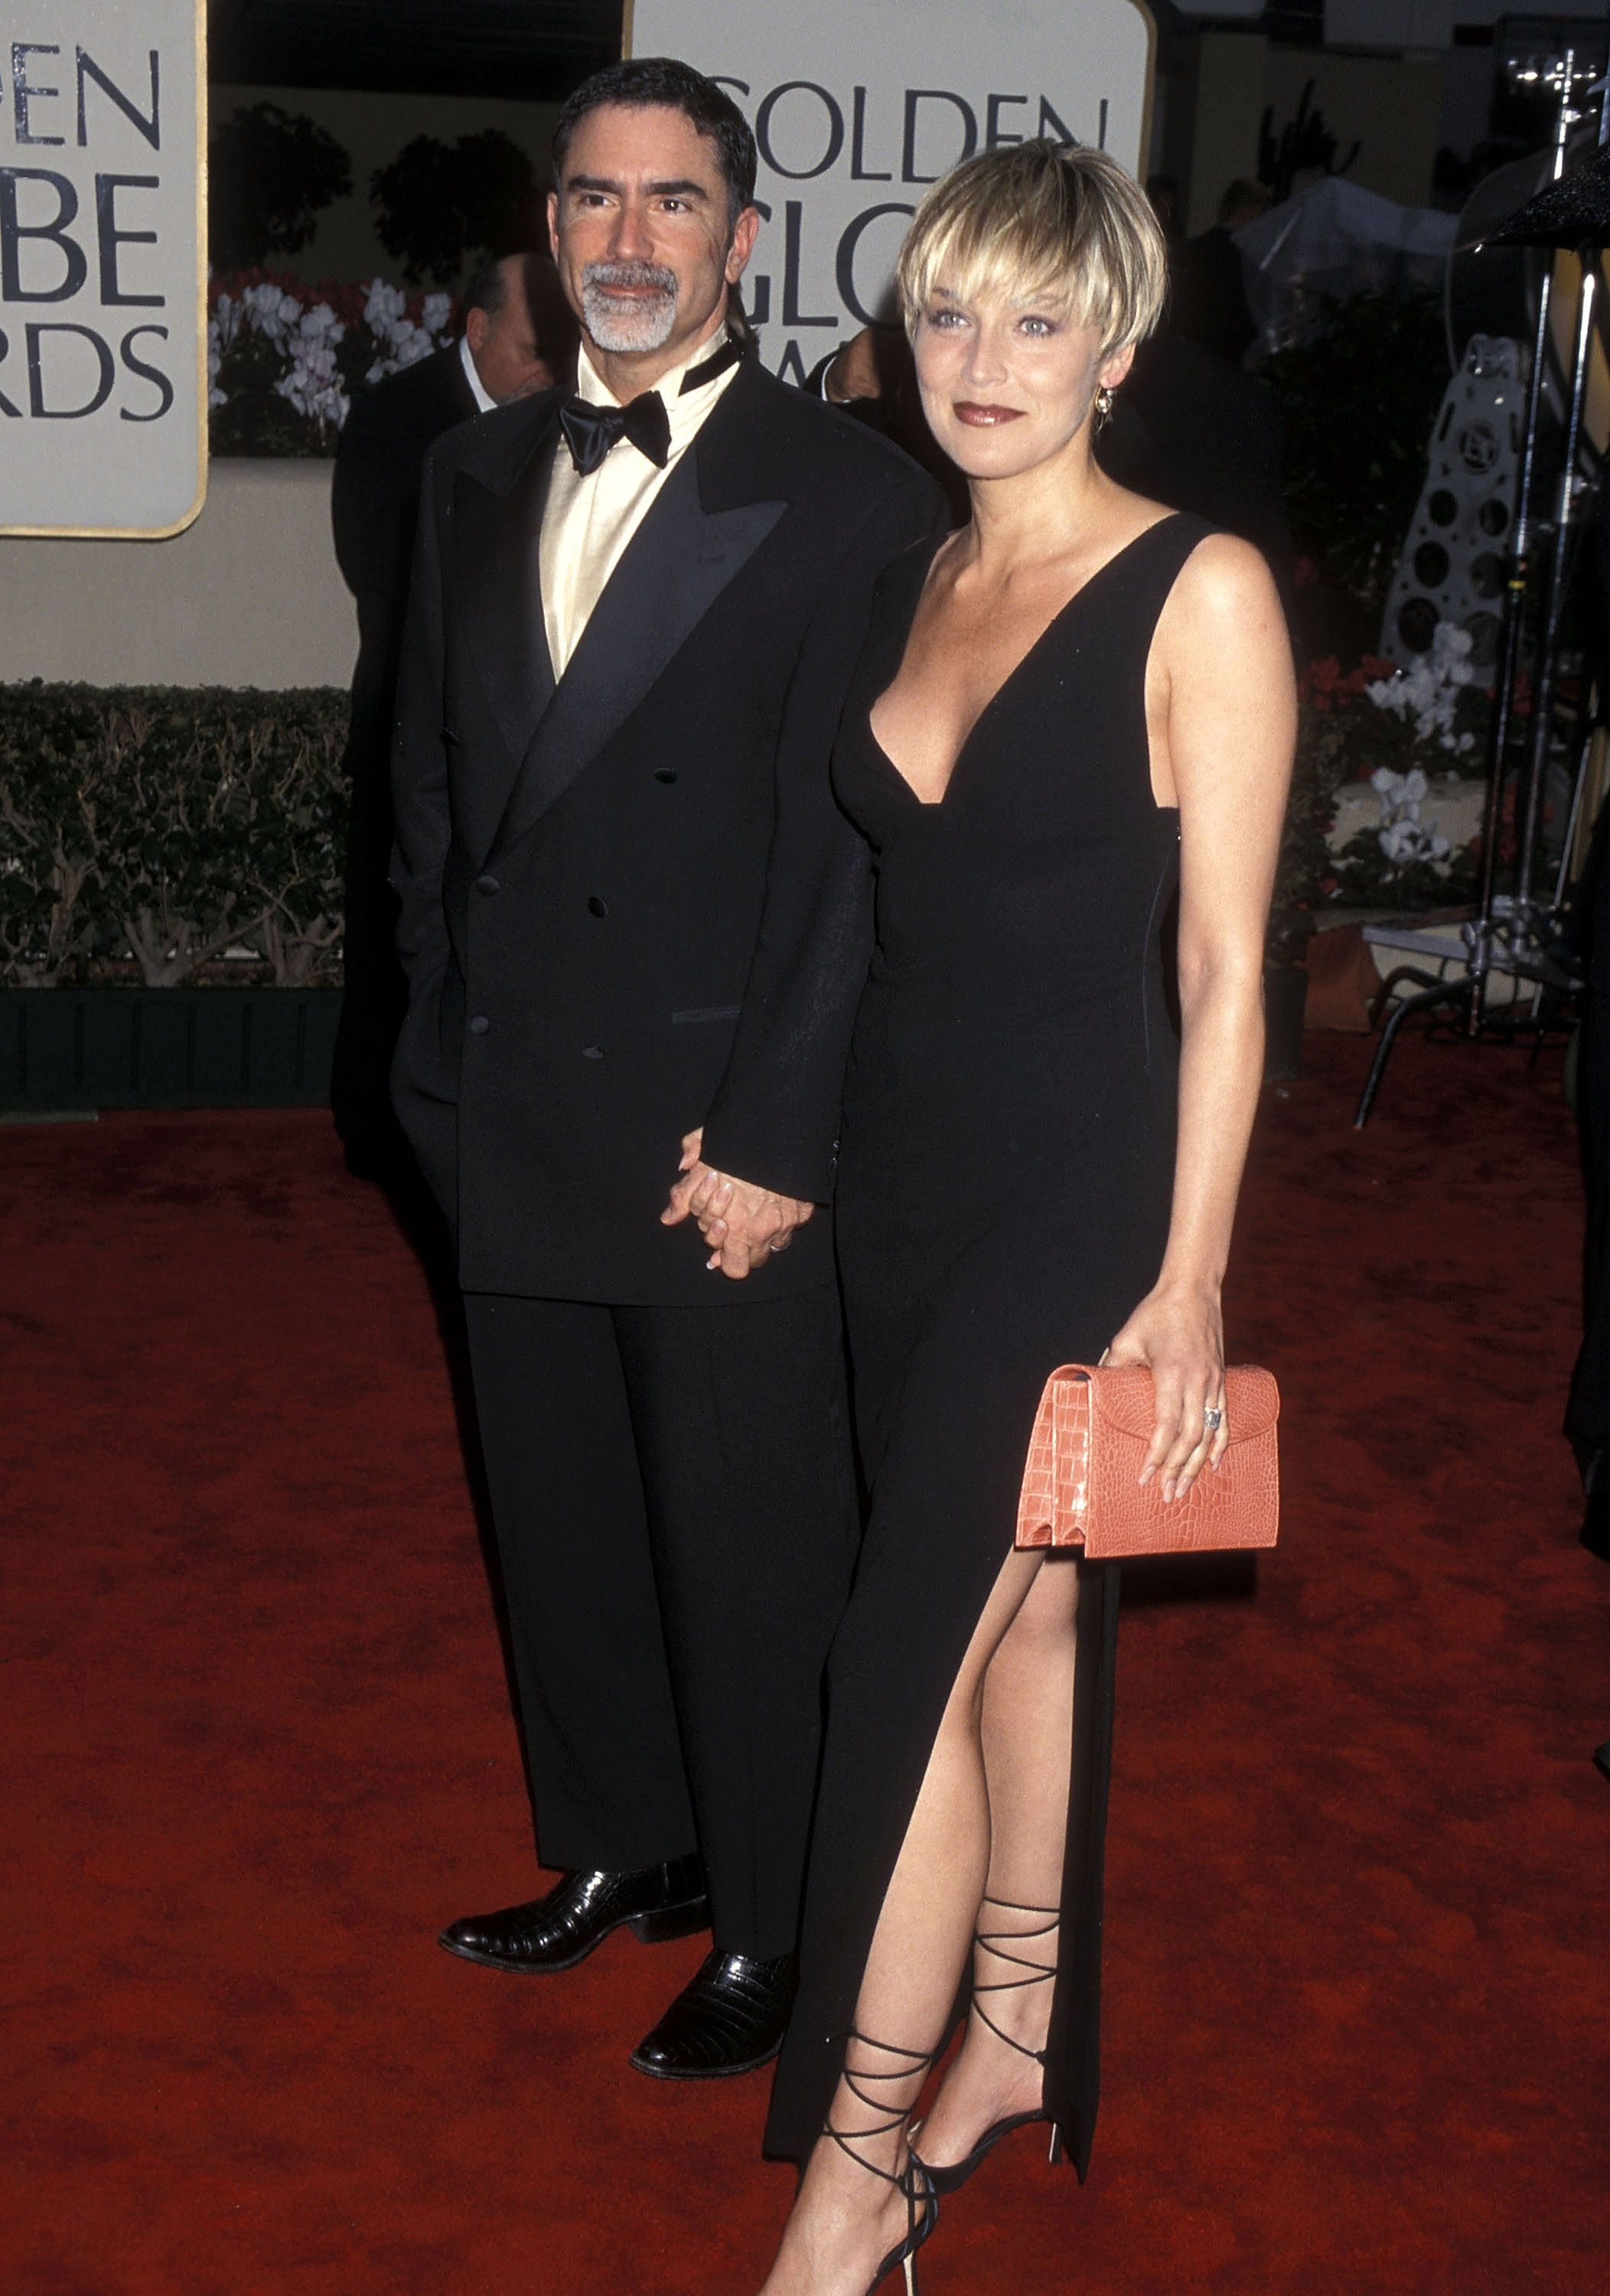 Sharon Stone and Phil Bronstein at the 57th Annual Golden Globe Awards in 2000 in Beverly Hills, California | Source: Getty Images